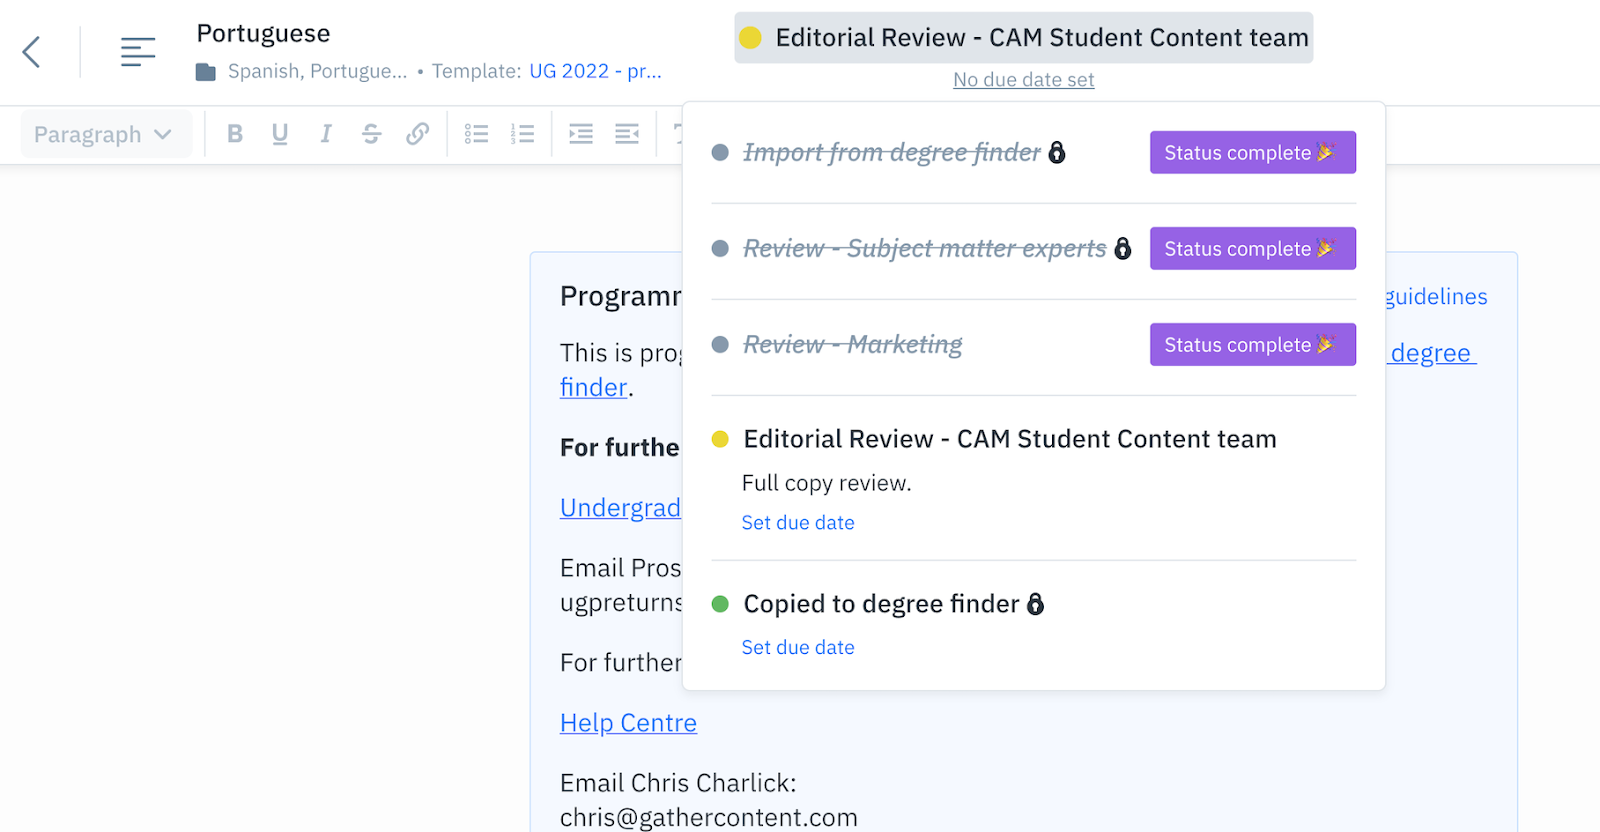 Content workflow within a programme content item in GatherContent, showing all of the workflow stages and their status such as 'import from degree finder' being complete.